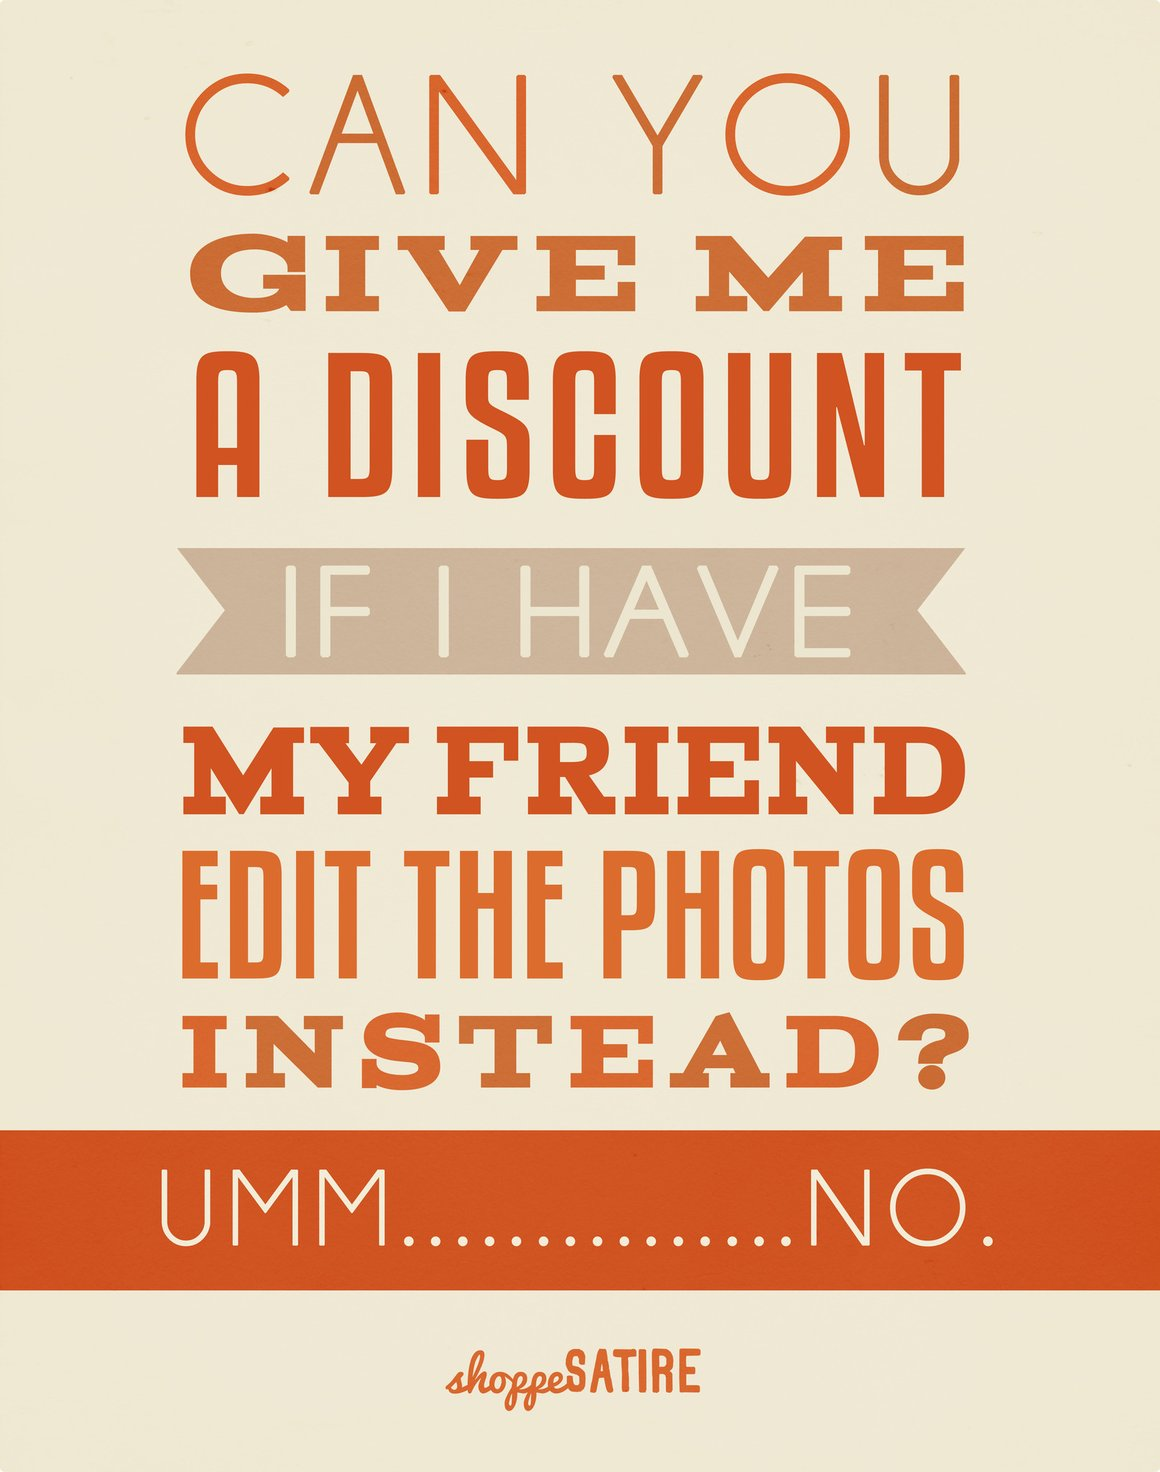 Can you give me a discount if I have my friend edit the photos instead? Umm.....No.